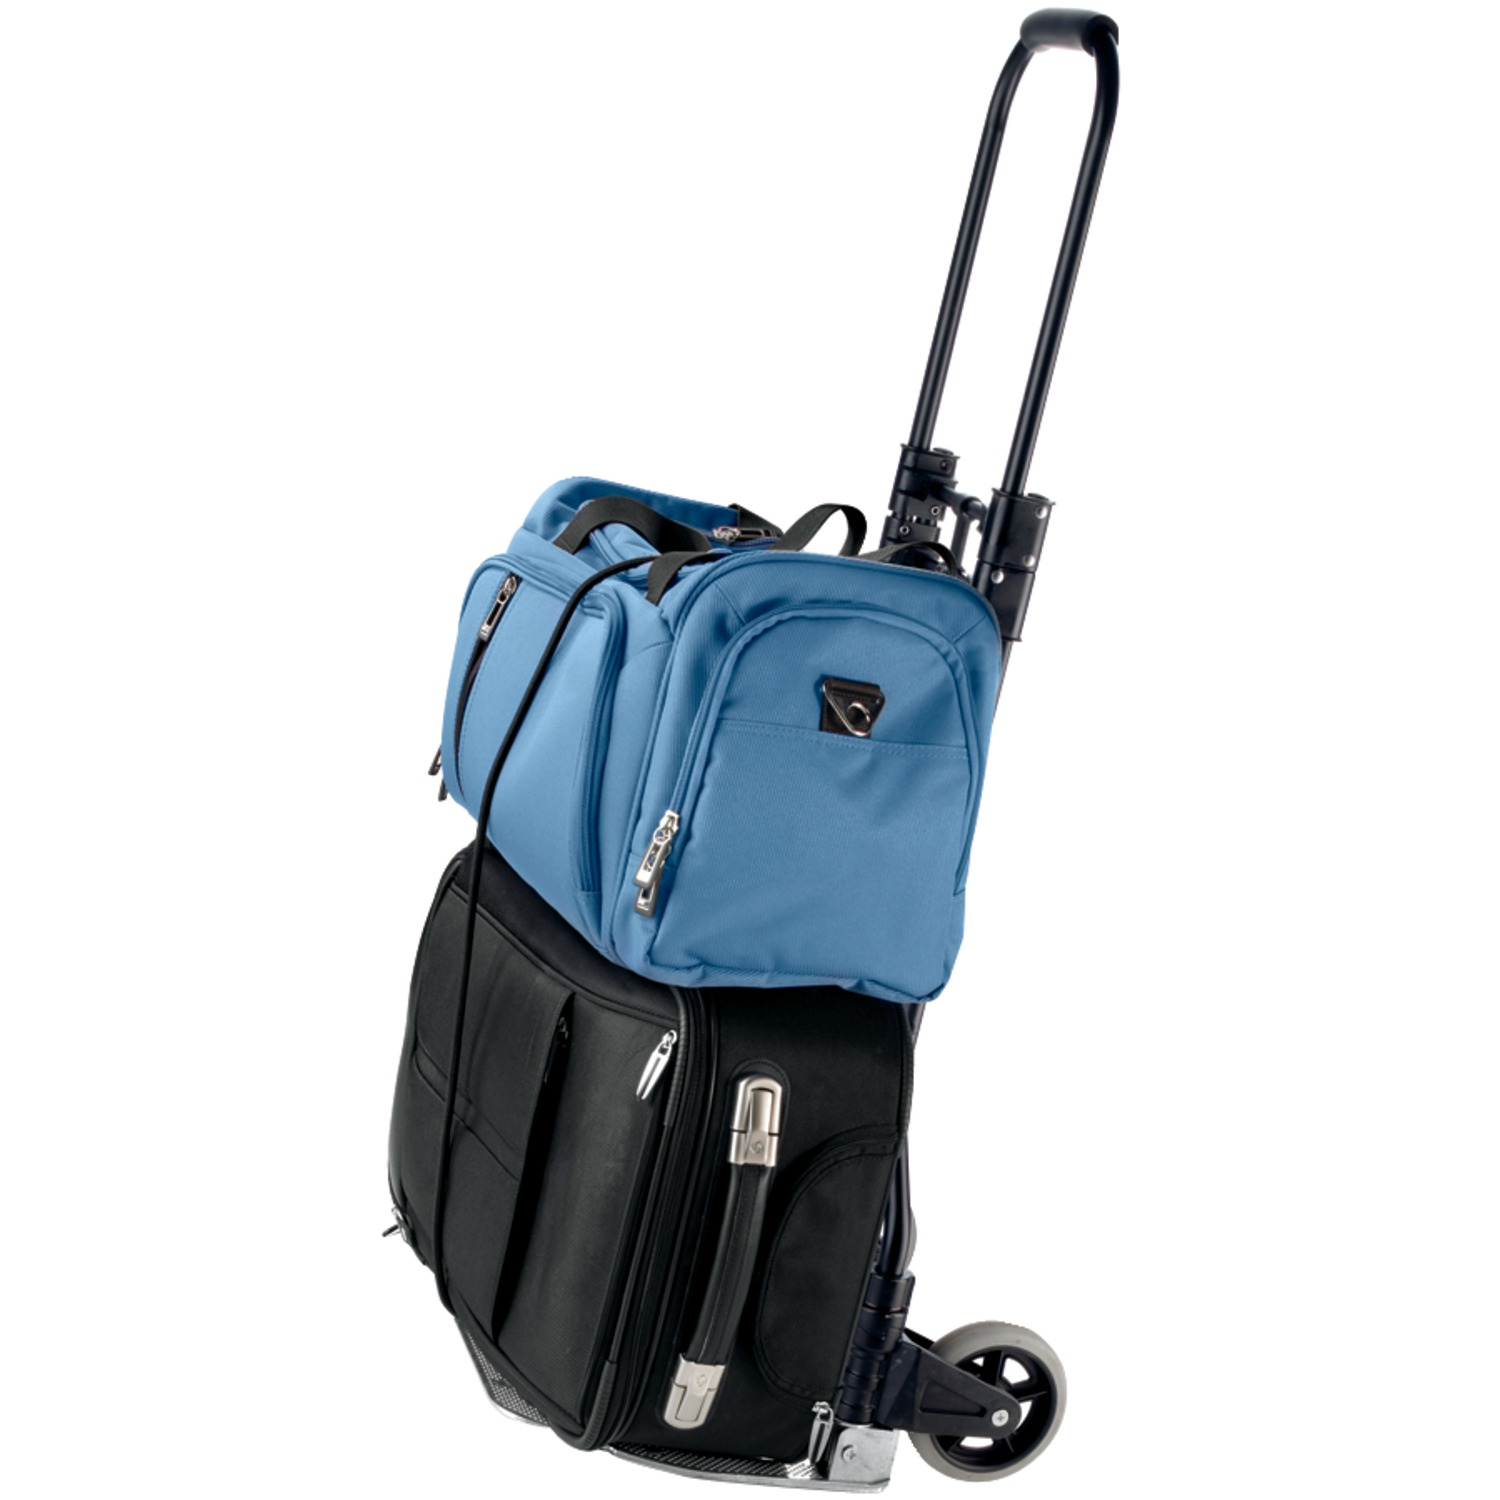 Travel Smart By Conair Ts33hdcr Heavy-duty Folding Multi-use/luggage Cart